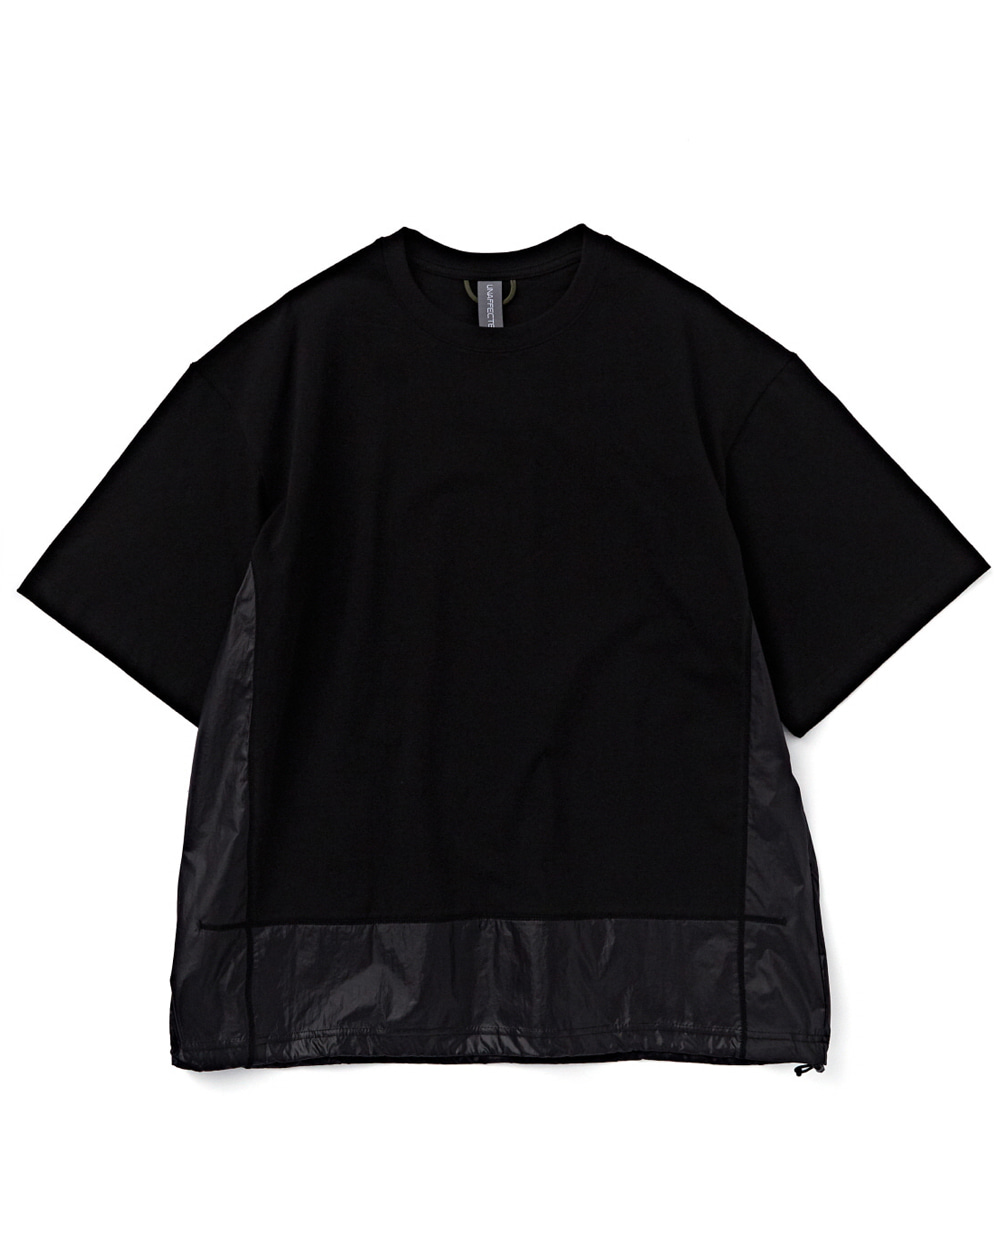 언어펙티드 CONTRAST PANEL T-SHIRT (Black)